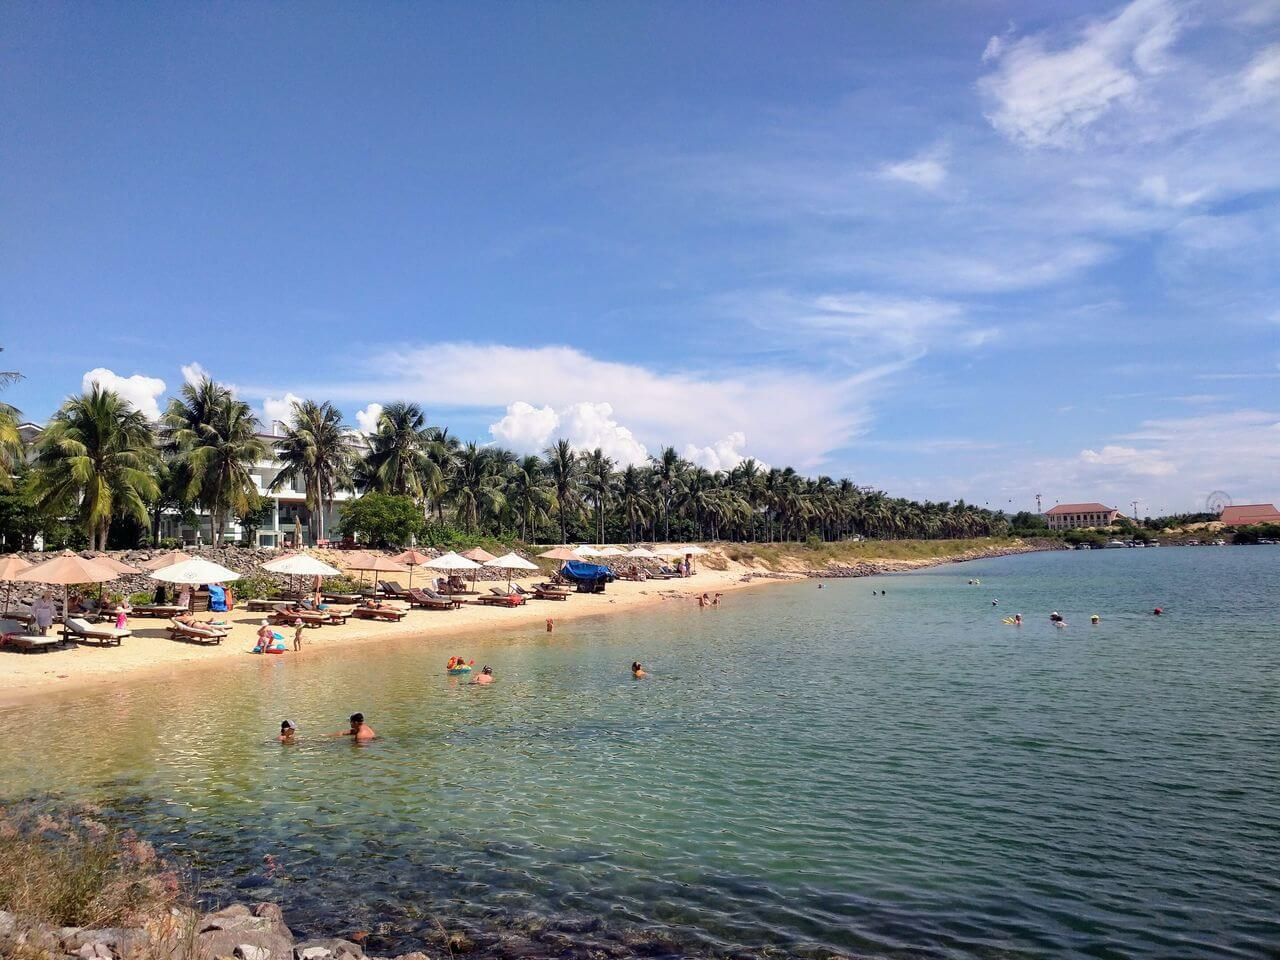 Paragon Beach is located 10 km from the center of Nha Trang